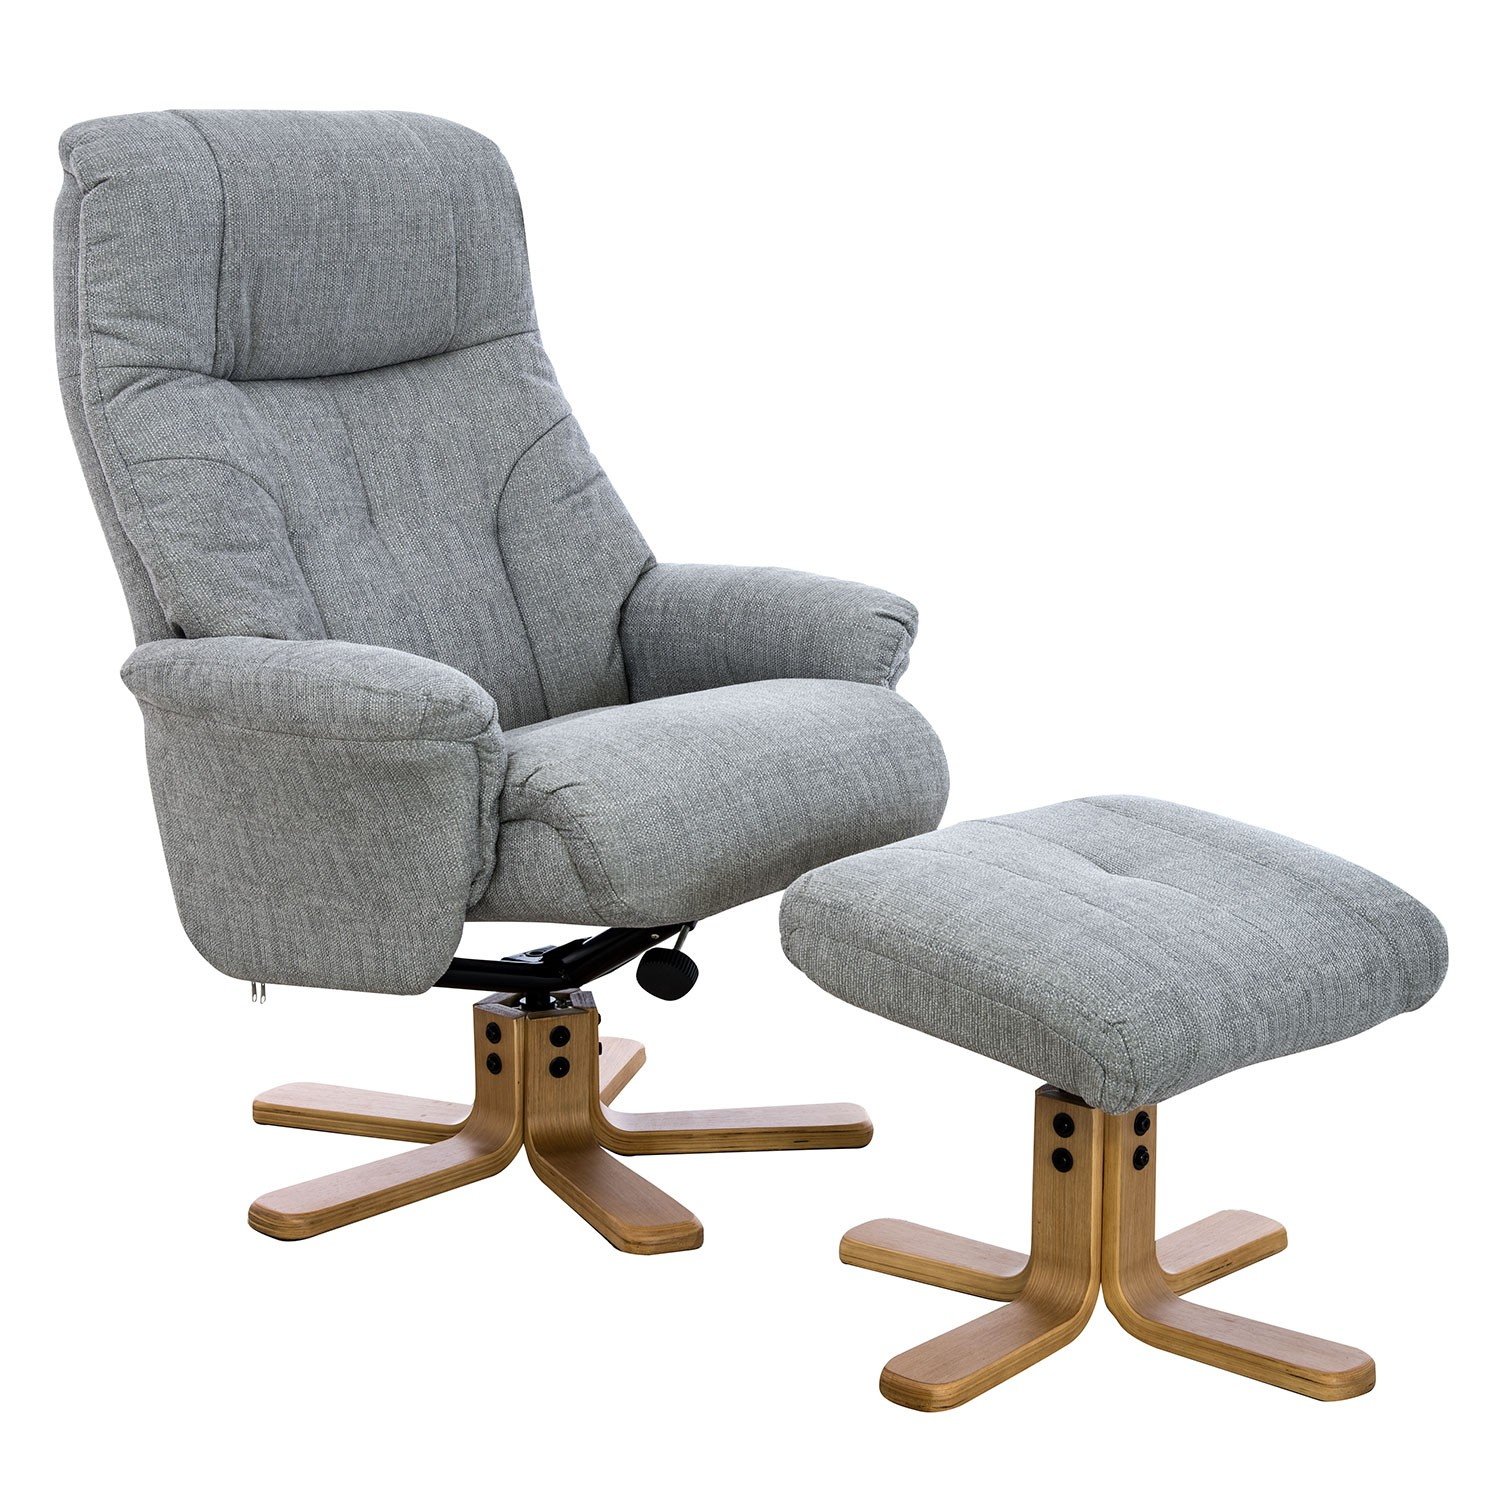 Casa Trento Swivel Recliner And Footstool | Leekes Within Decker Ii Fabric Swivel Rocker Recliners (Image 5 of 25)